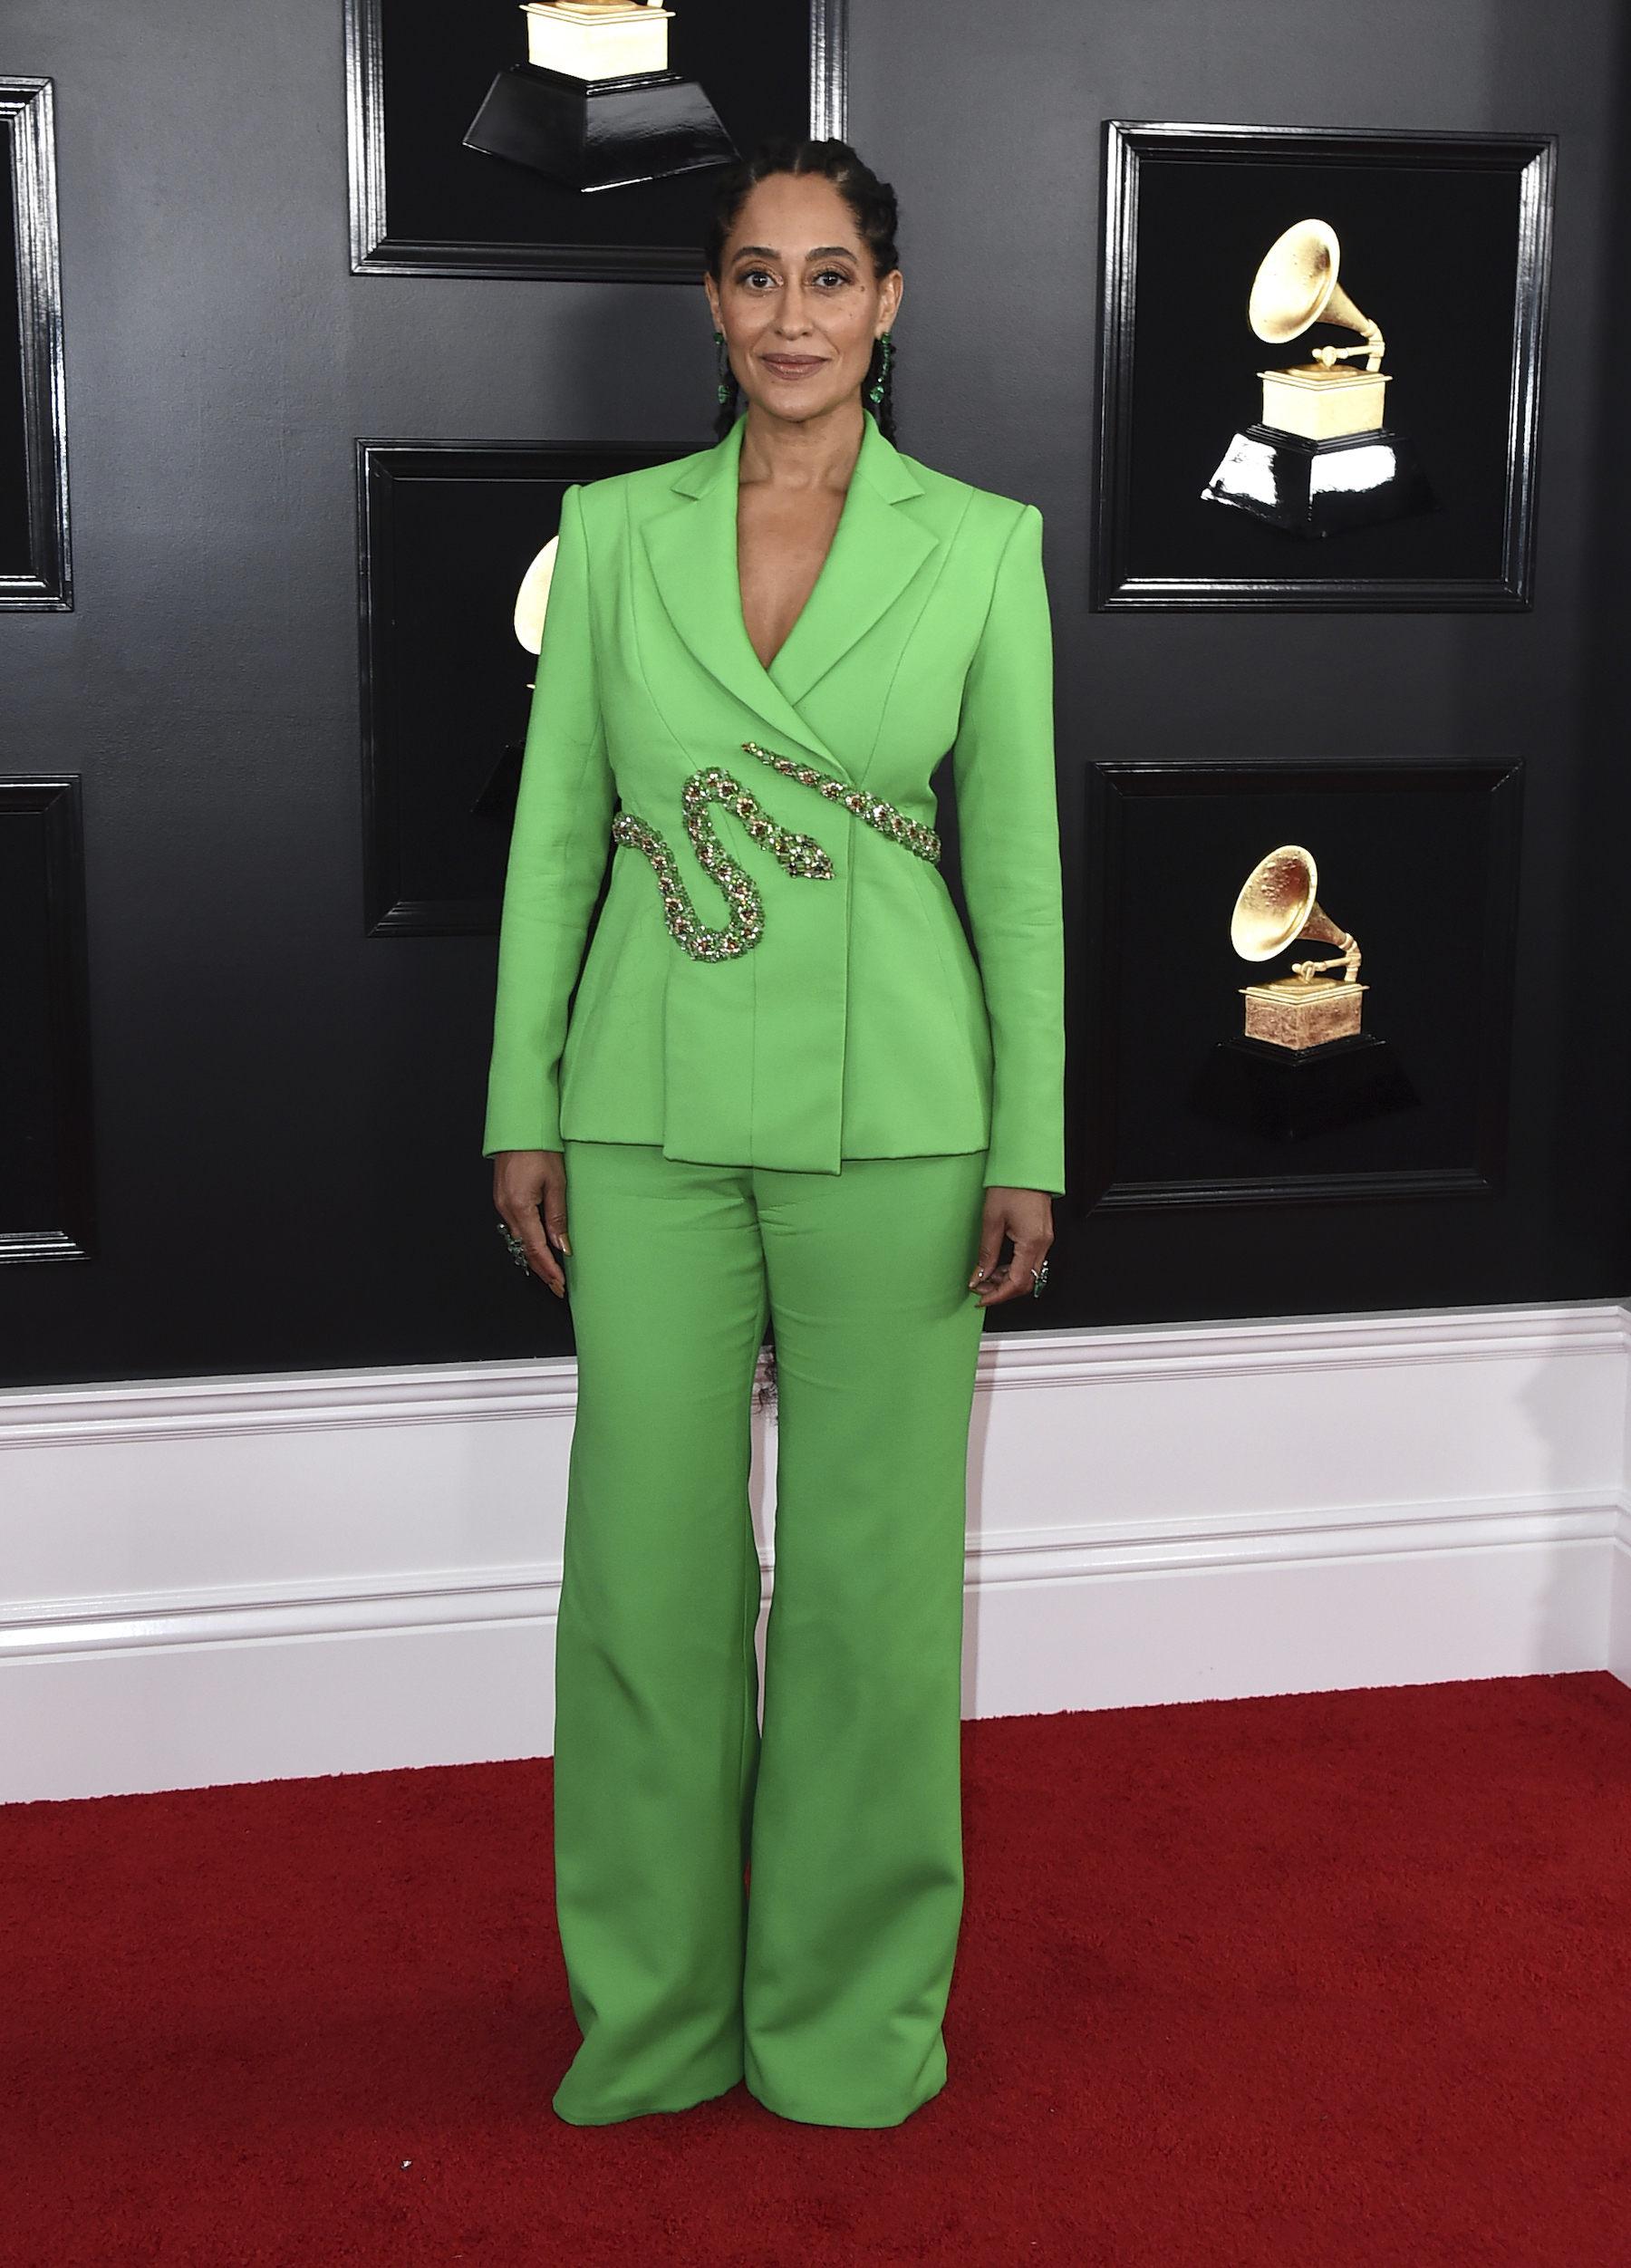 <div class='meta'><div class='origin-logo' data-origin='AP'></div><span class='caption-text' data-credit='Jordan Strauss/Invision/AP'>Tracee Ellis Ross arrives at the 61st annual Grammy Awards at the Staples Center on Sunday, Feb. 10, 2019, in Los Angeles.</span></div>